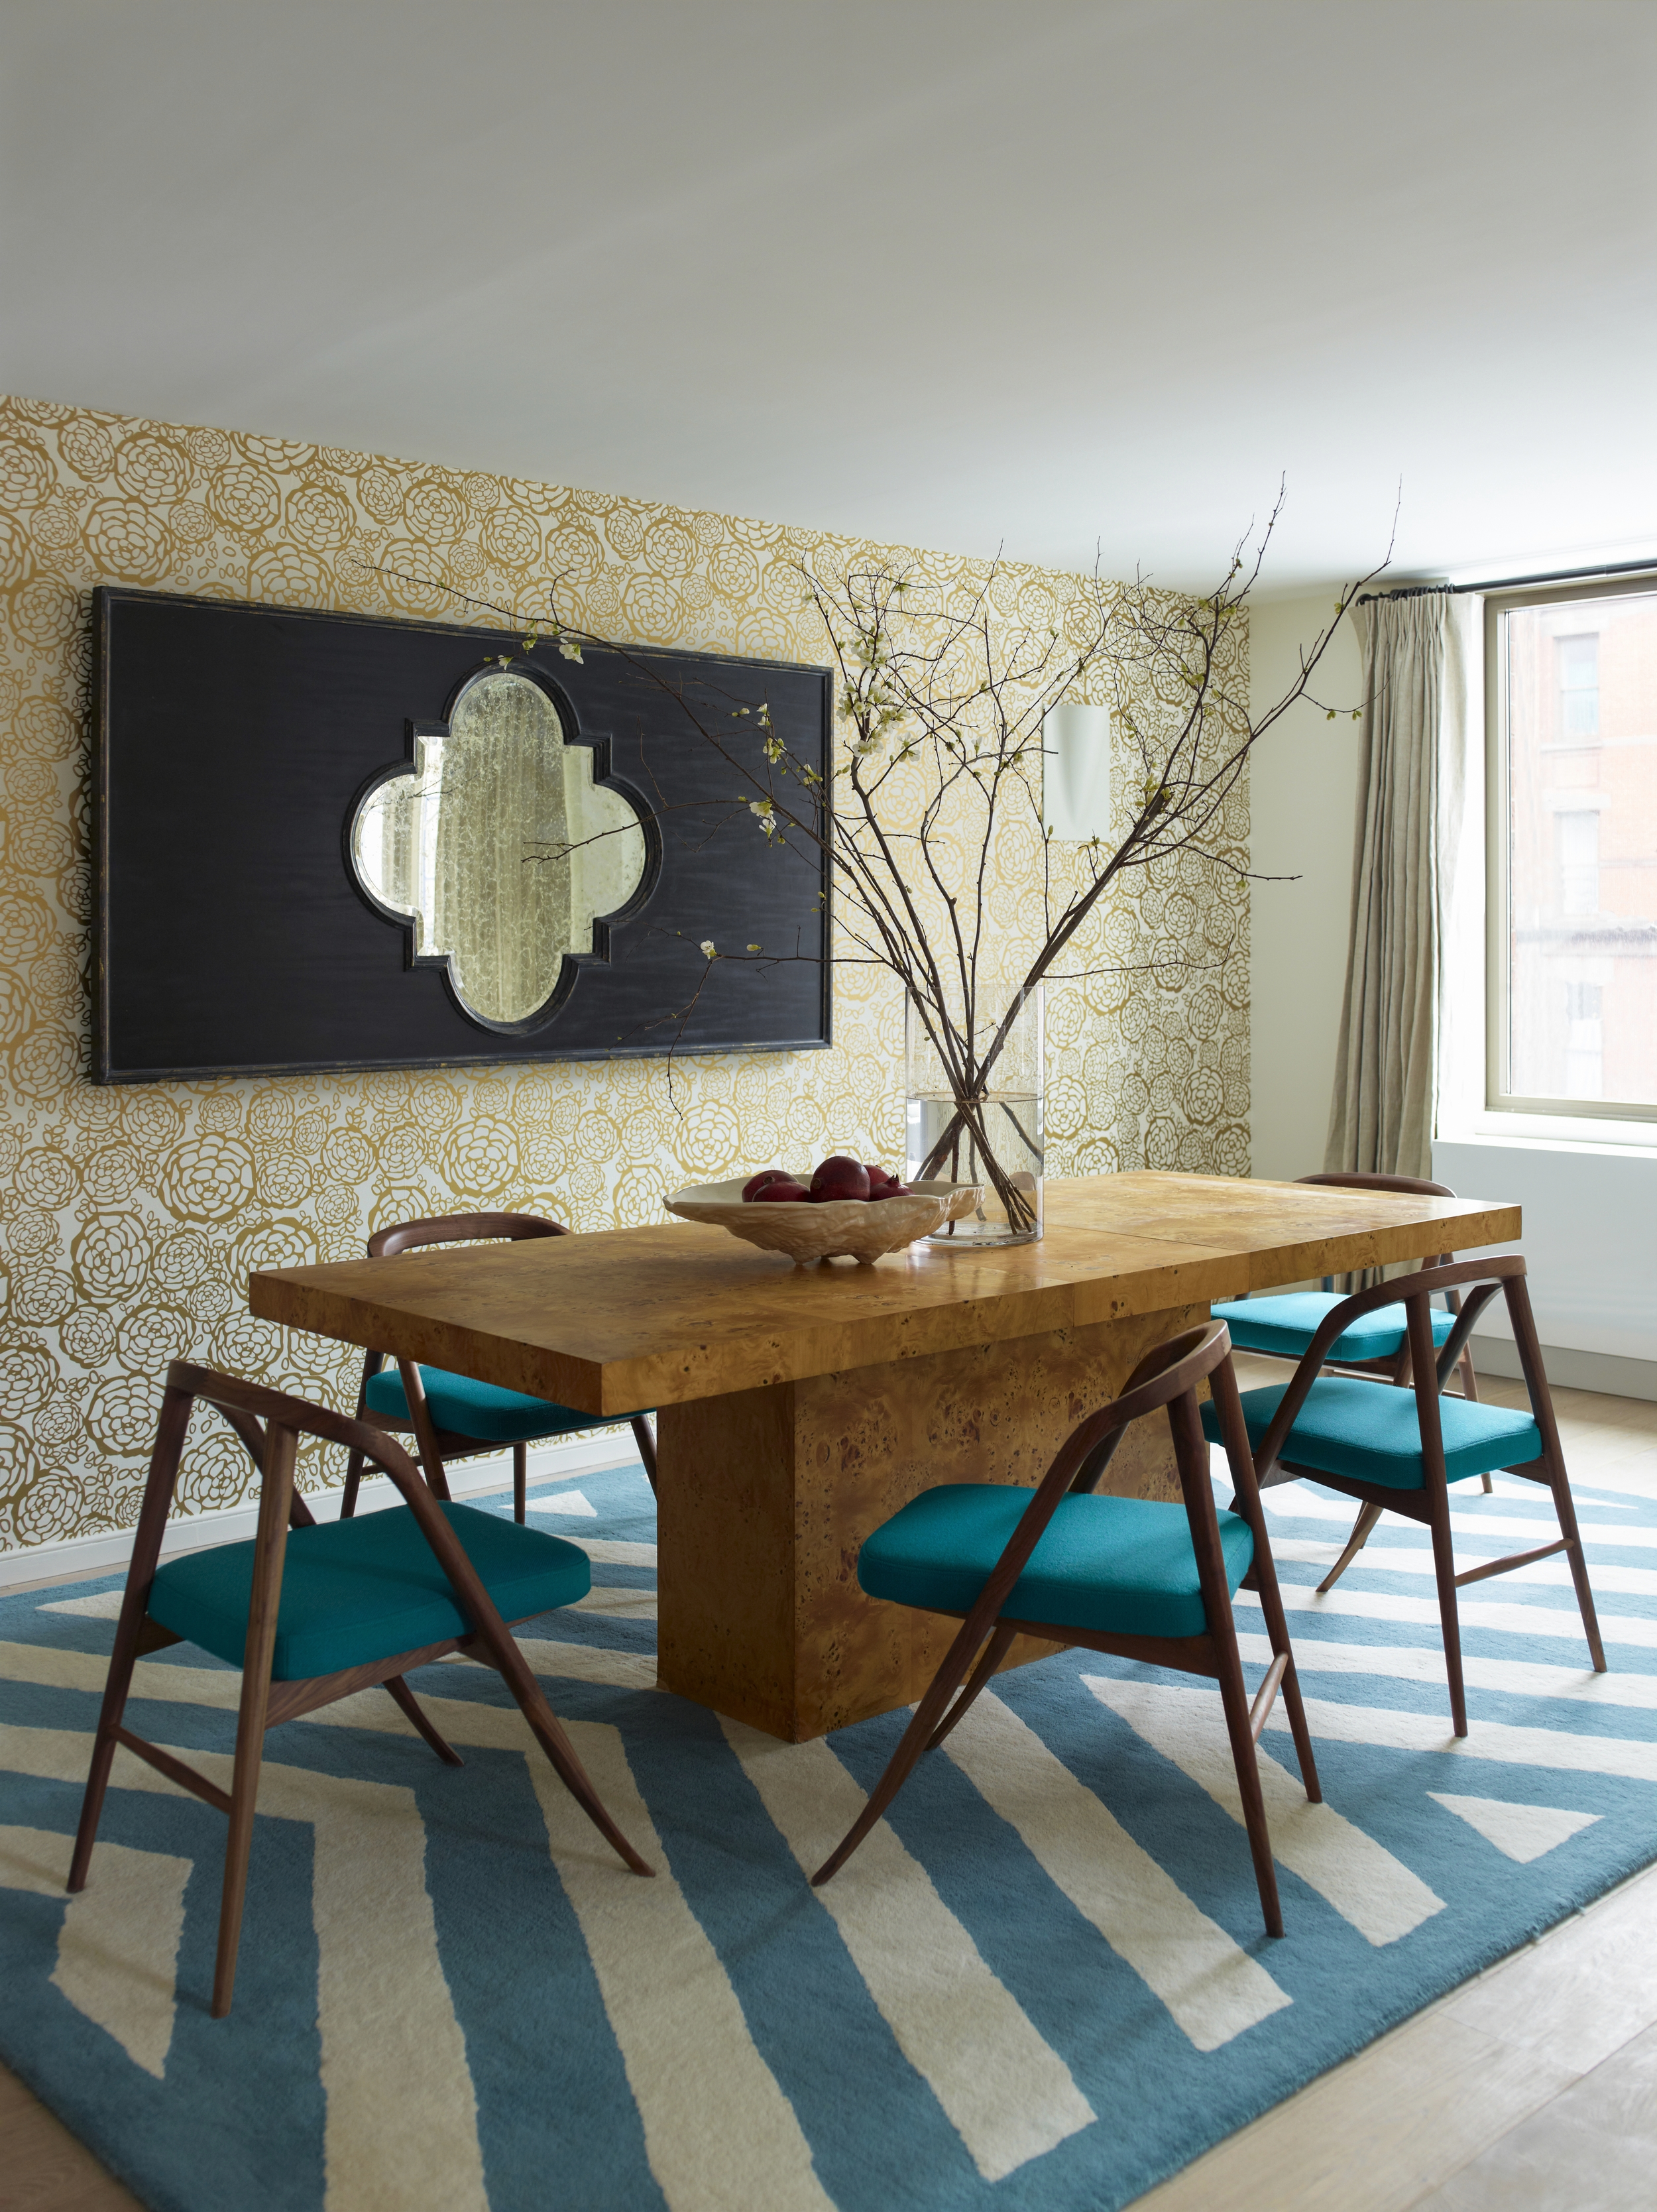 101 W 87th Street Dining Room Table and Chairs